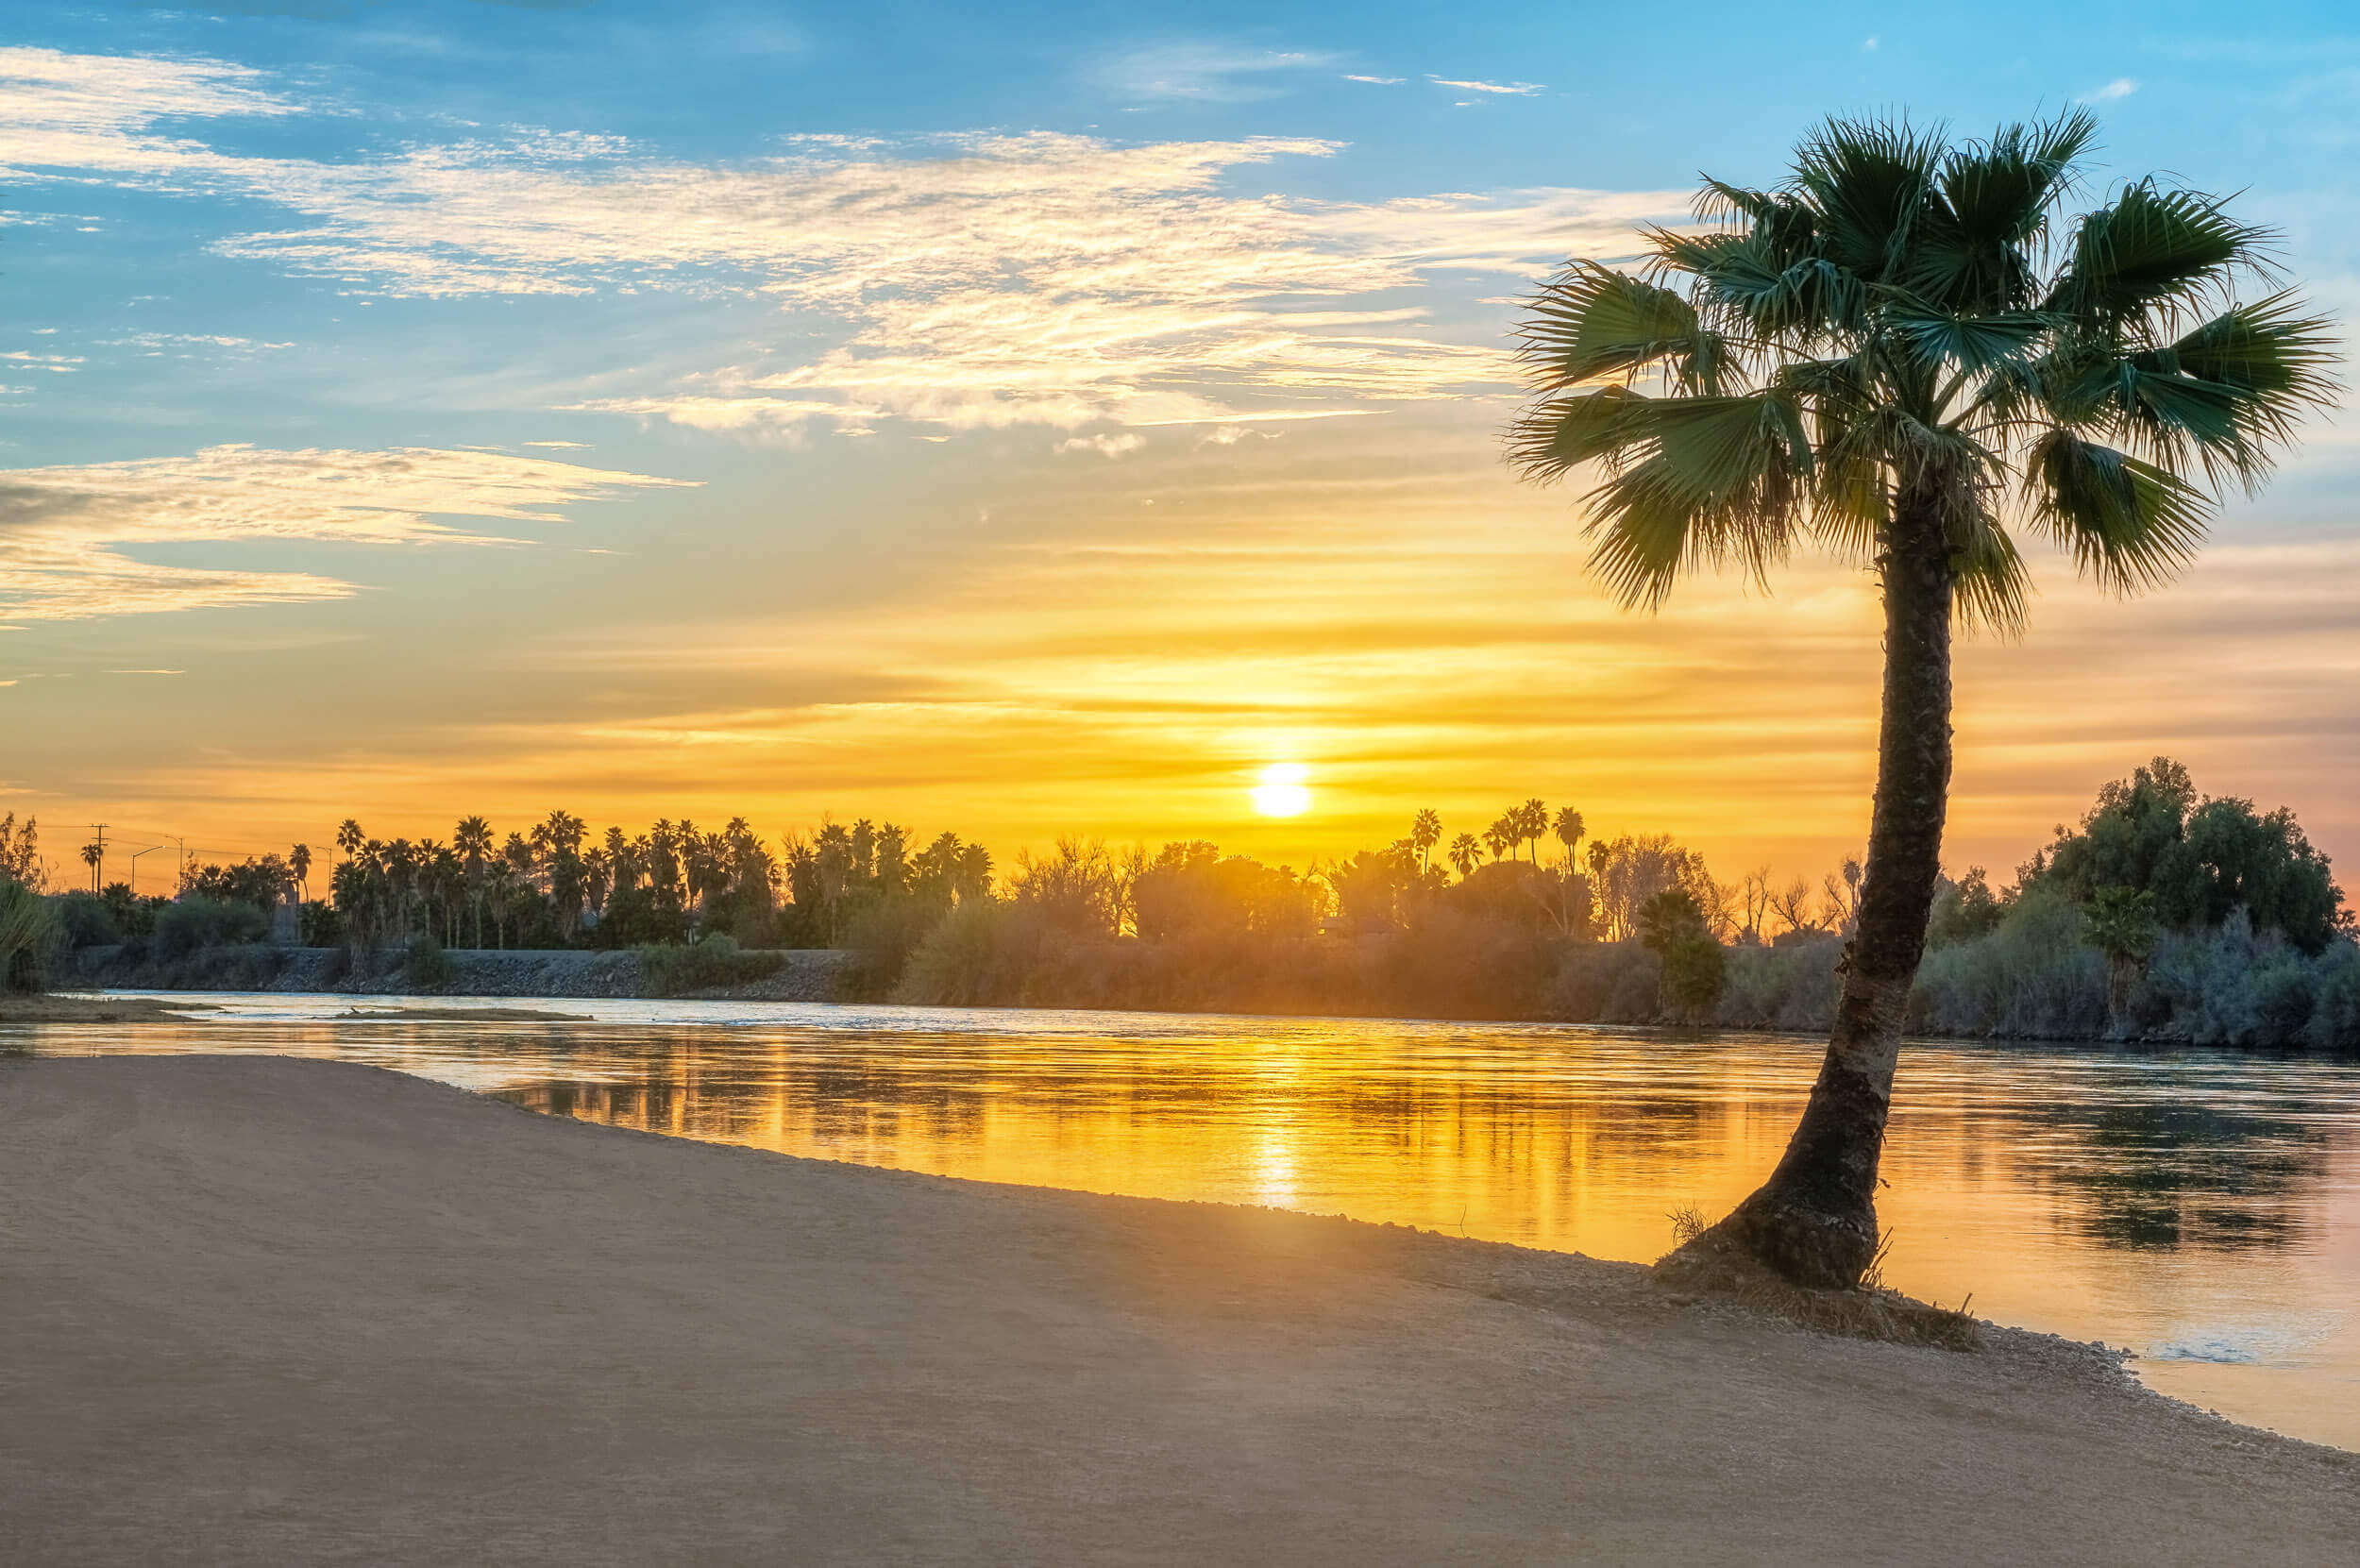 - • Decide how you want to stay (Bring your RV or book a rental).• Need to be flexible? There are no fees to change your dates!• Want to bring a big group? Check out our group discount.• We'll help you convince your friends to check Arizona Oasis out!